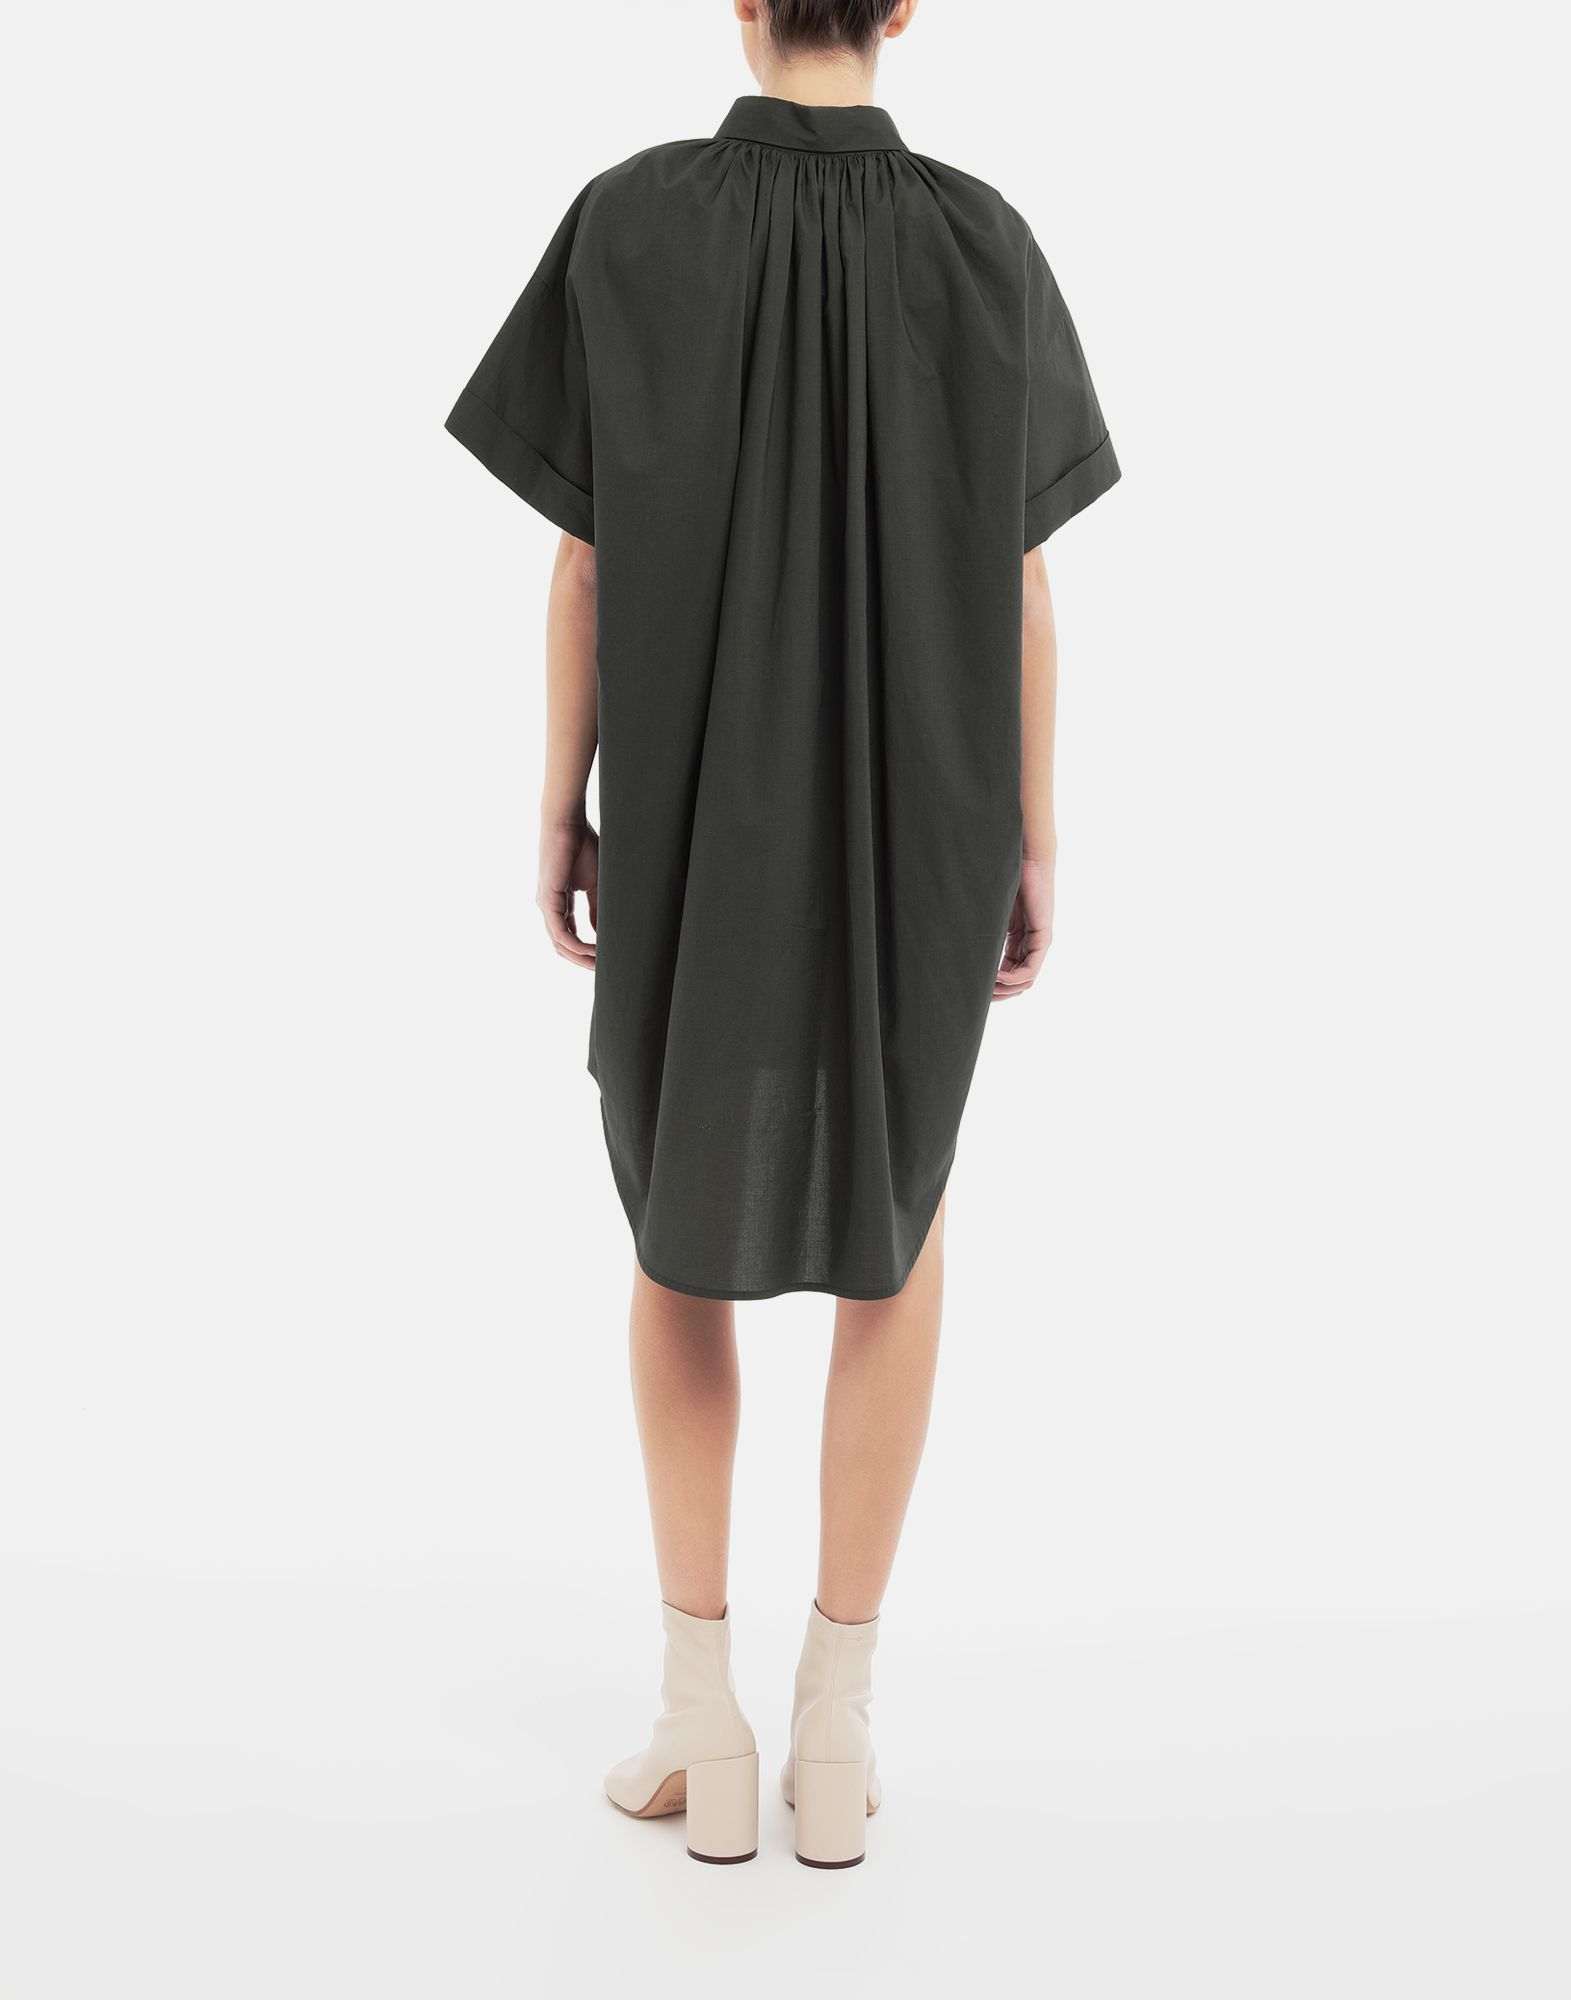 MM6 MAISON MARGIELA Oversized shirt-dress Dress Woman e